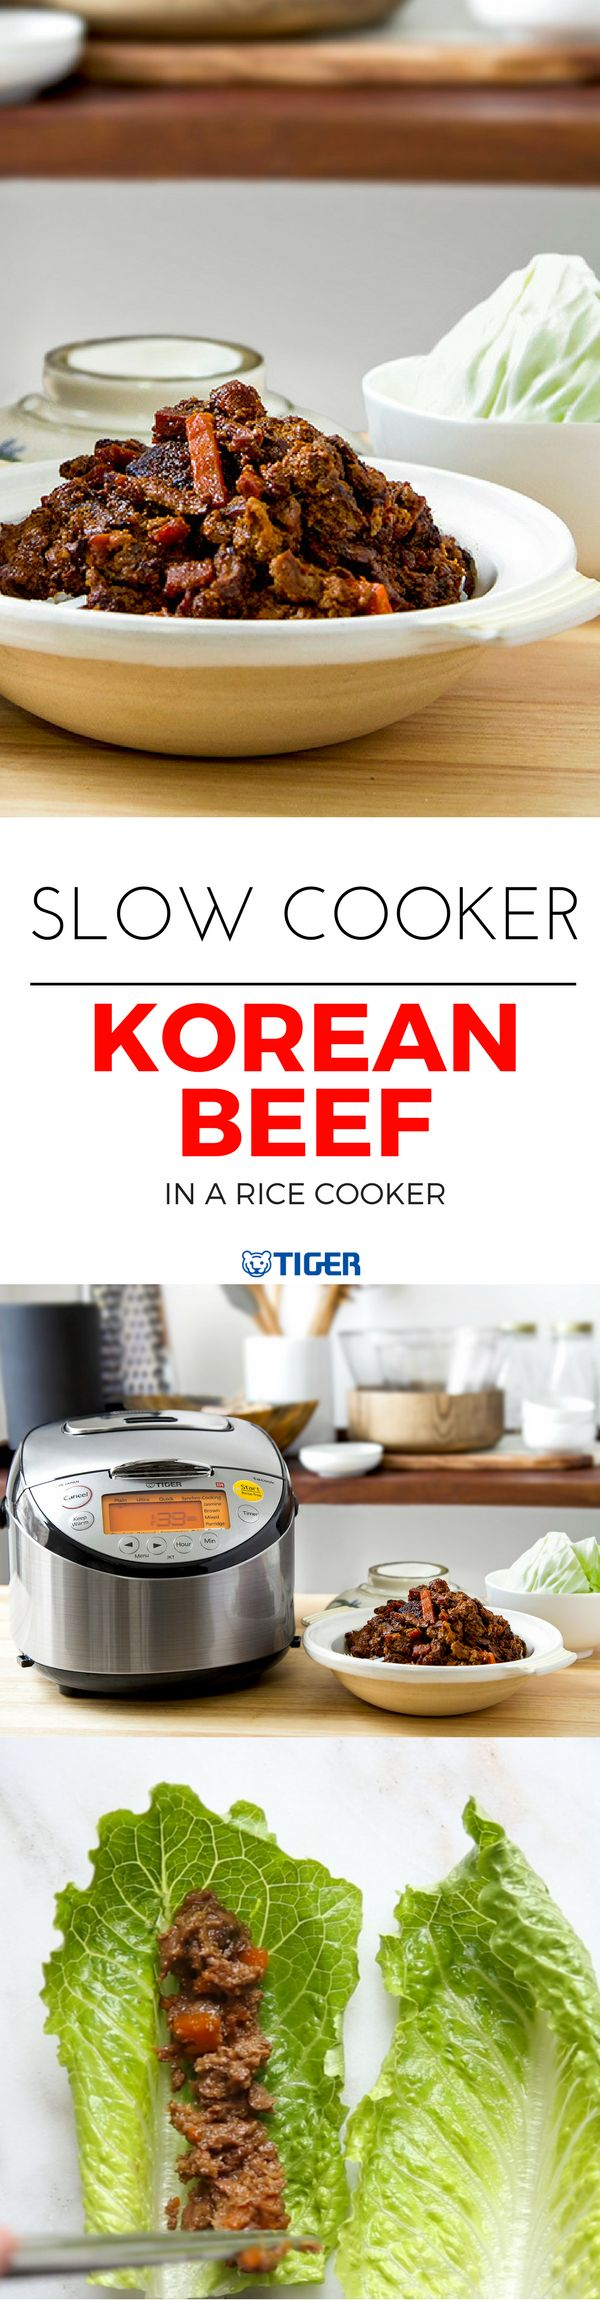 How to Make Slow Cooker Korean Beef in a Rice Cooker!